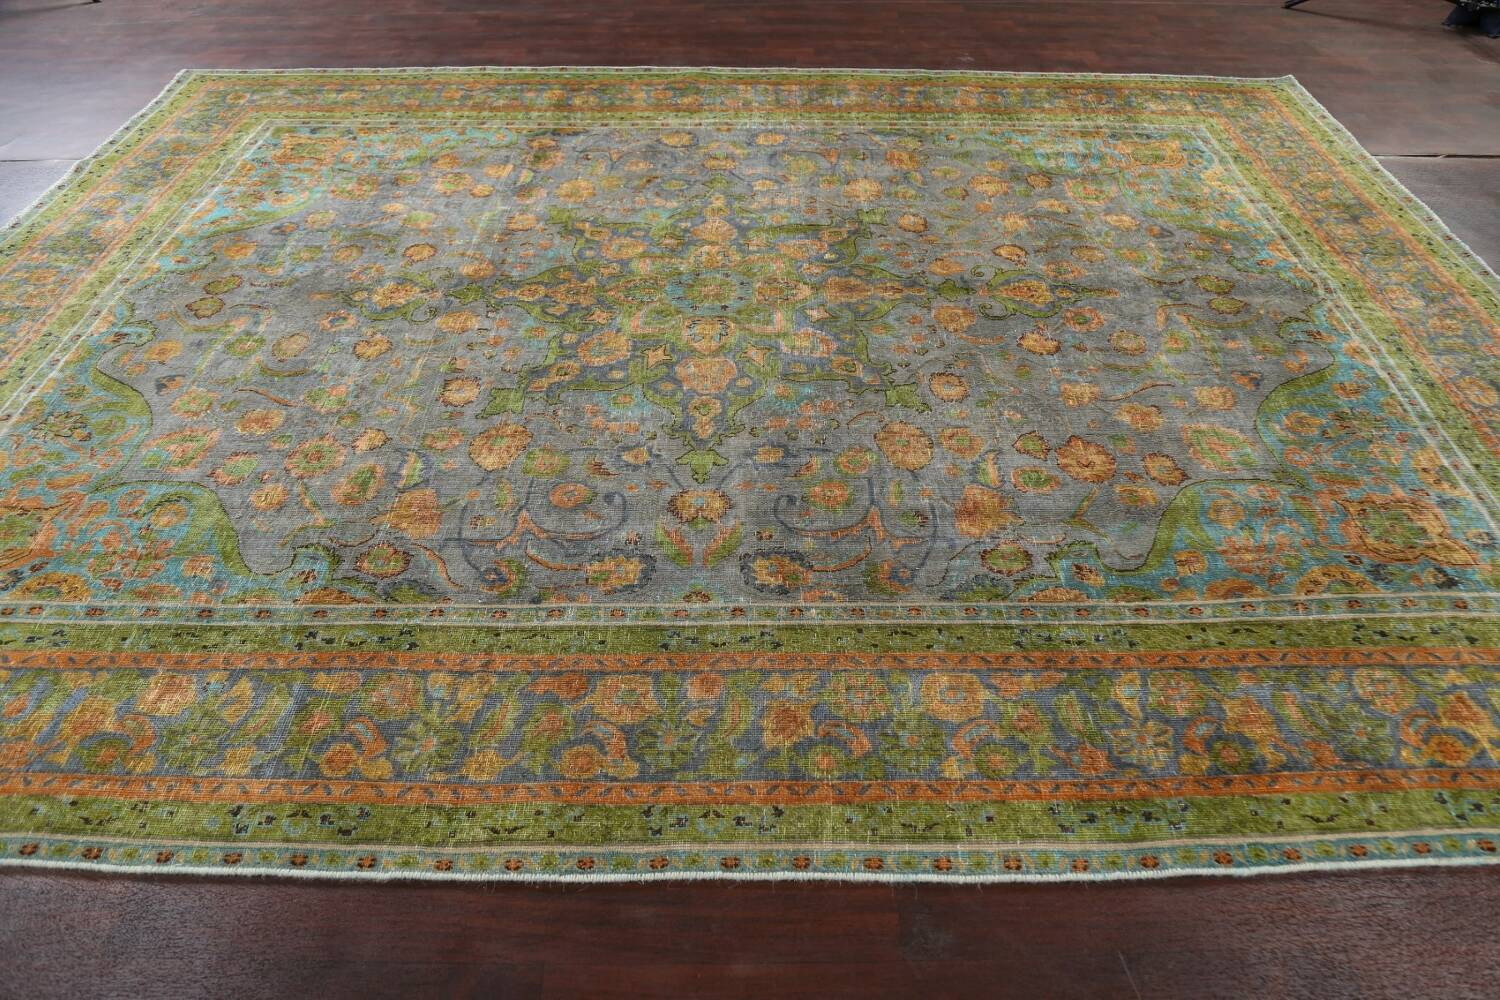 Antique Distressed Over-Dye Tabriz Persian Area Rug 9x12 image 15